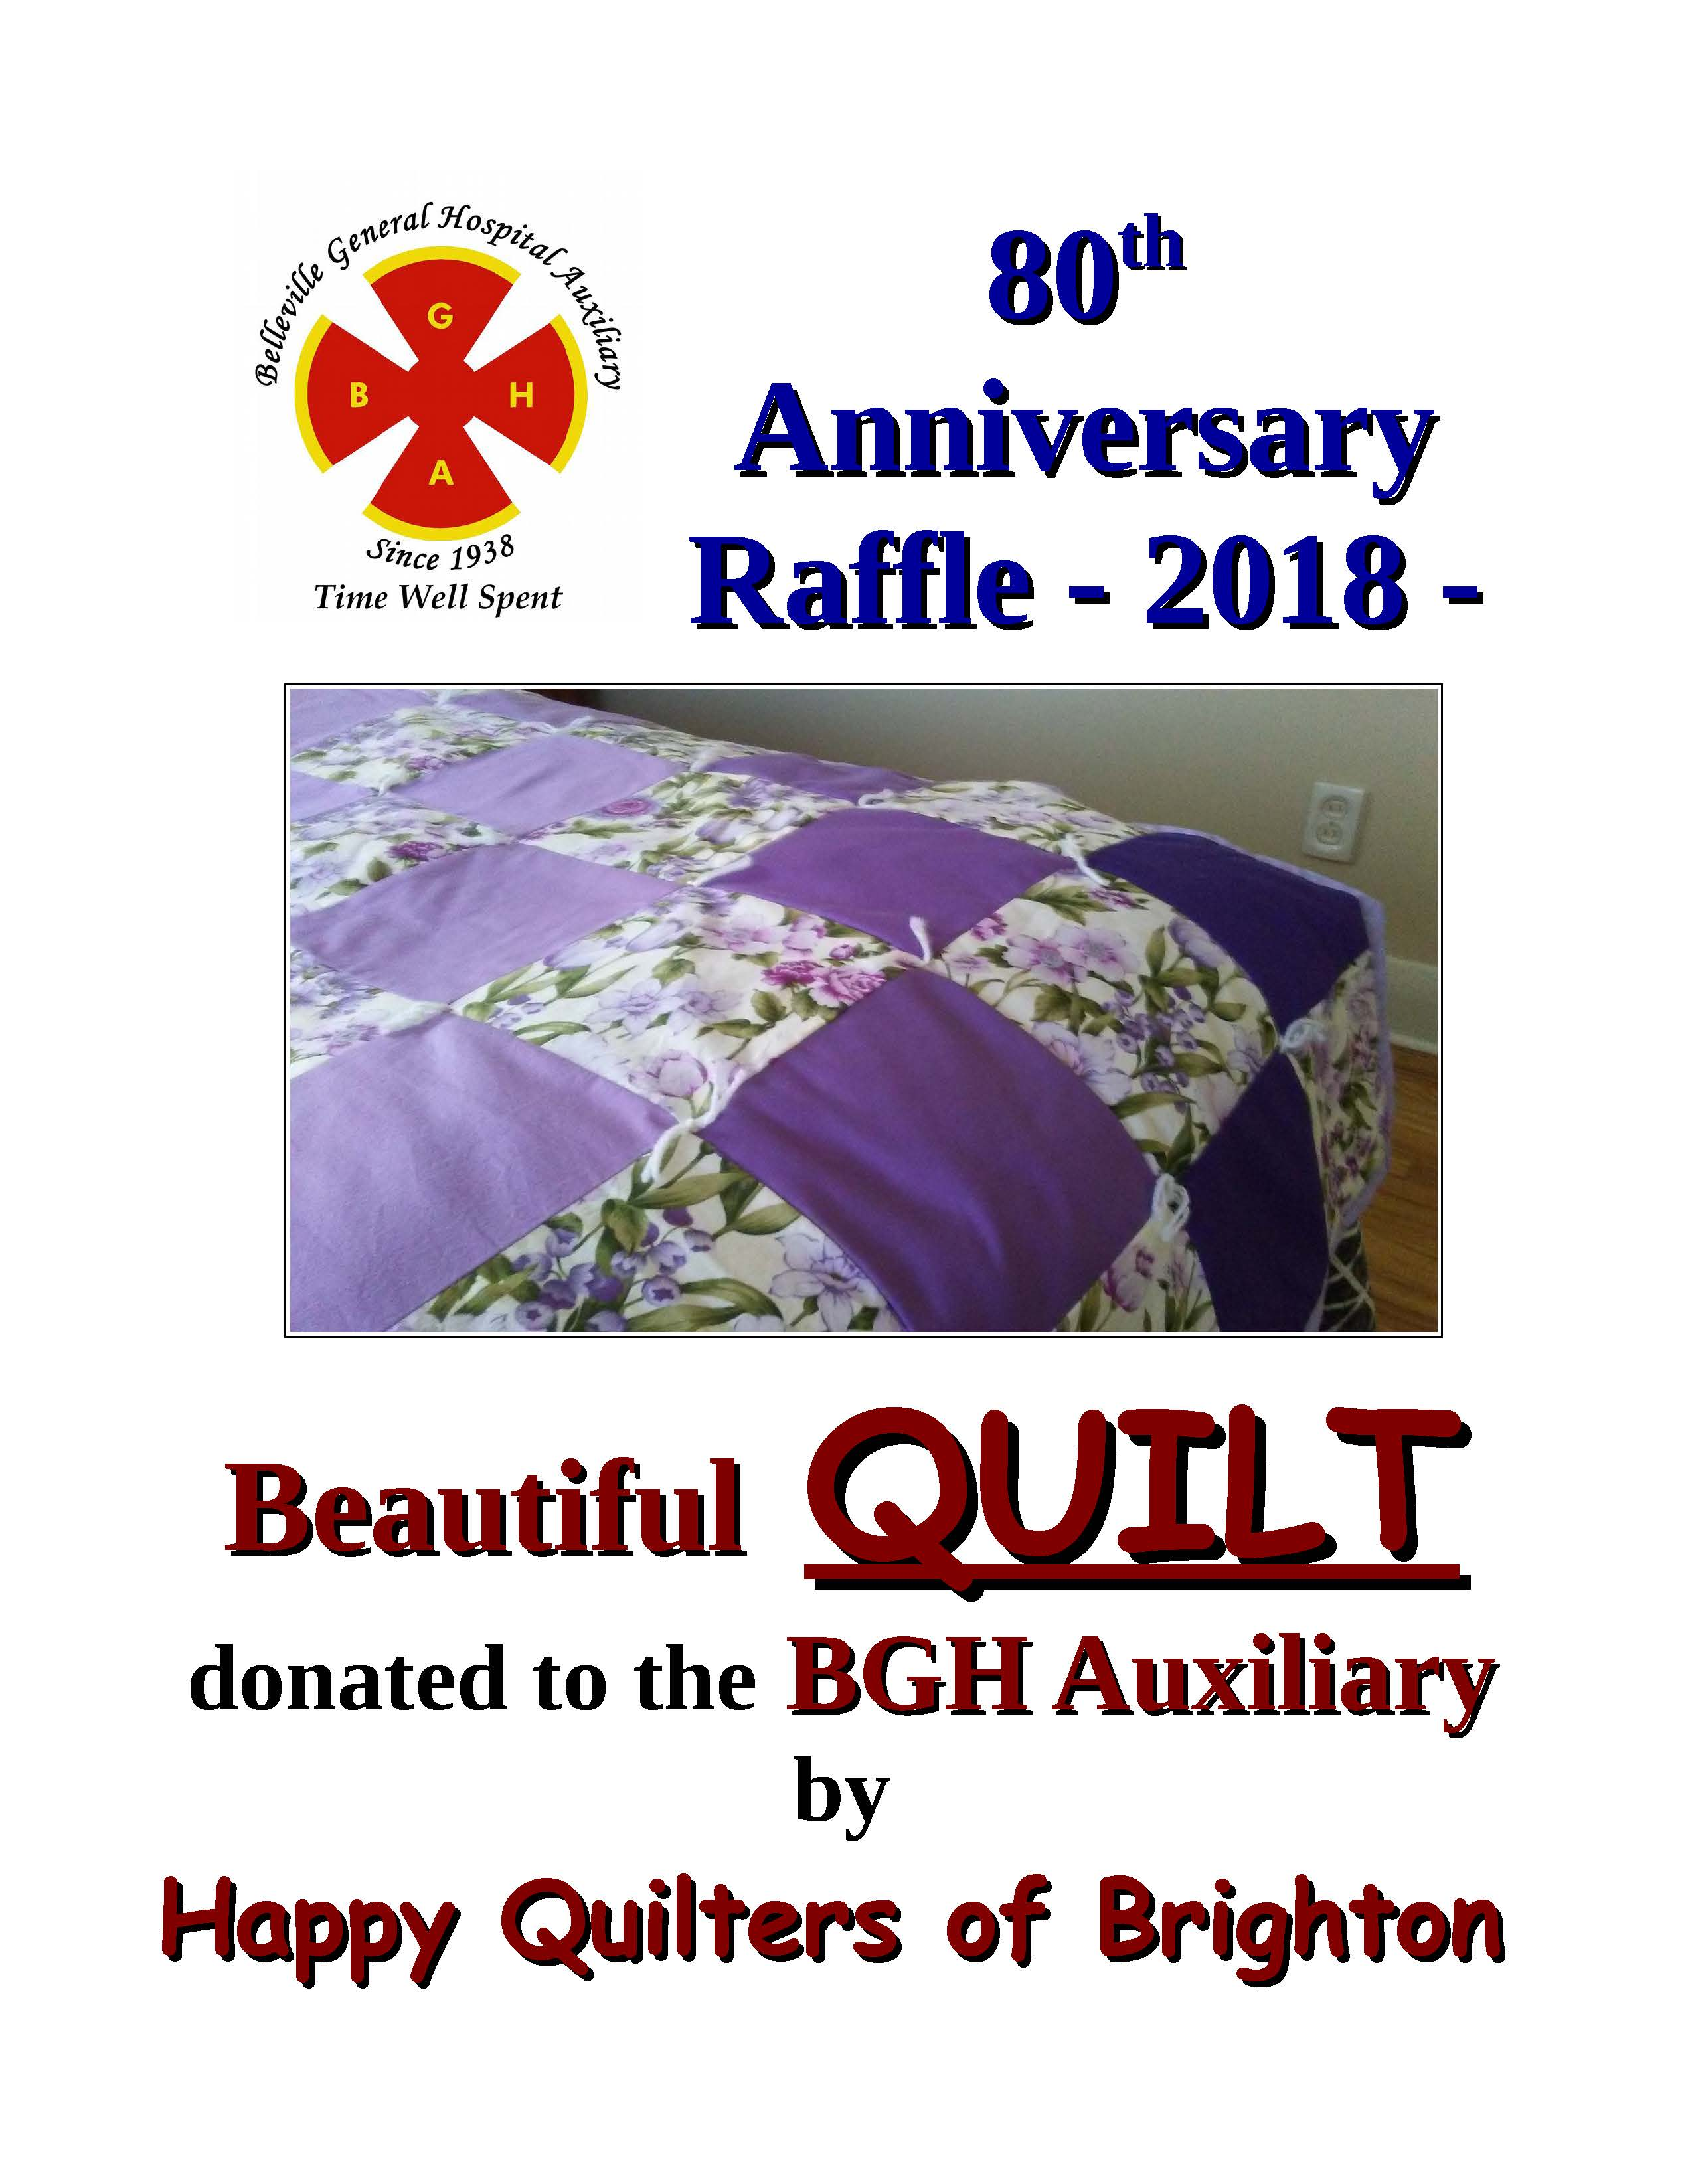 raffle draw for quilt